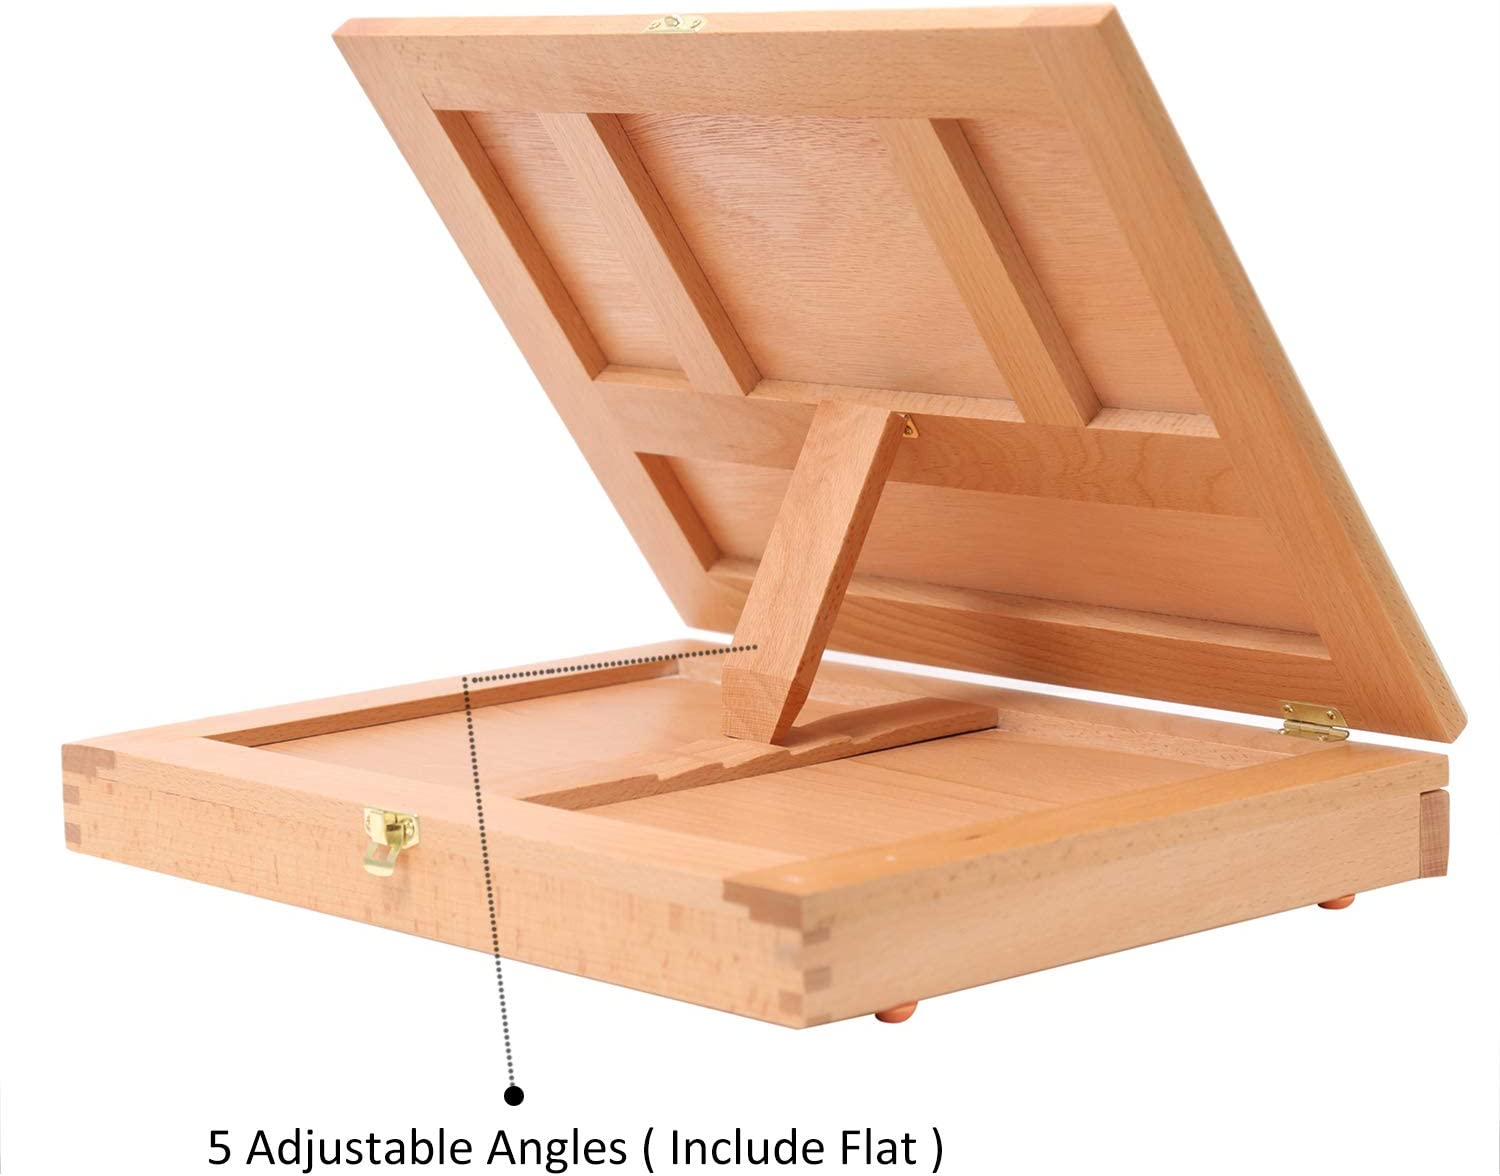 Portable Solid Beech Tabletop Wood Easel Drawing /& Sketching Board with Storage Drawer /& Palette for Beginner Artist Art Students /& Kids Canvas up to 11 /× 14 MEEDEN Table Sketch Box Easel